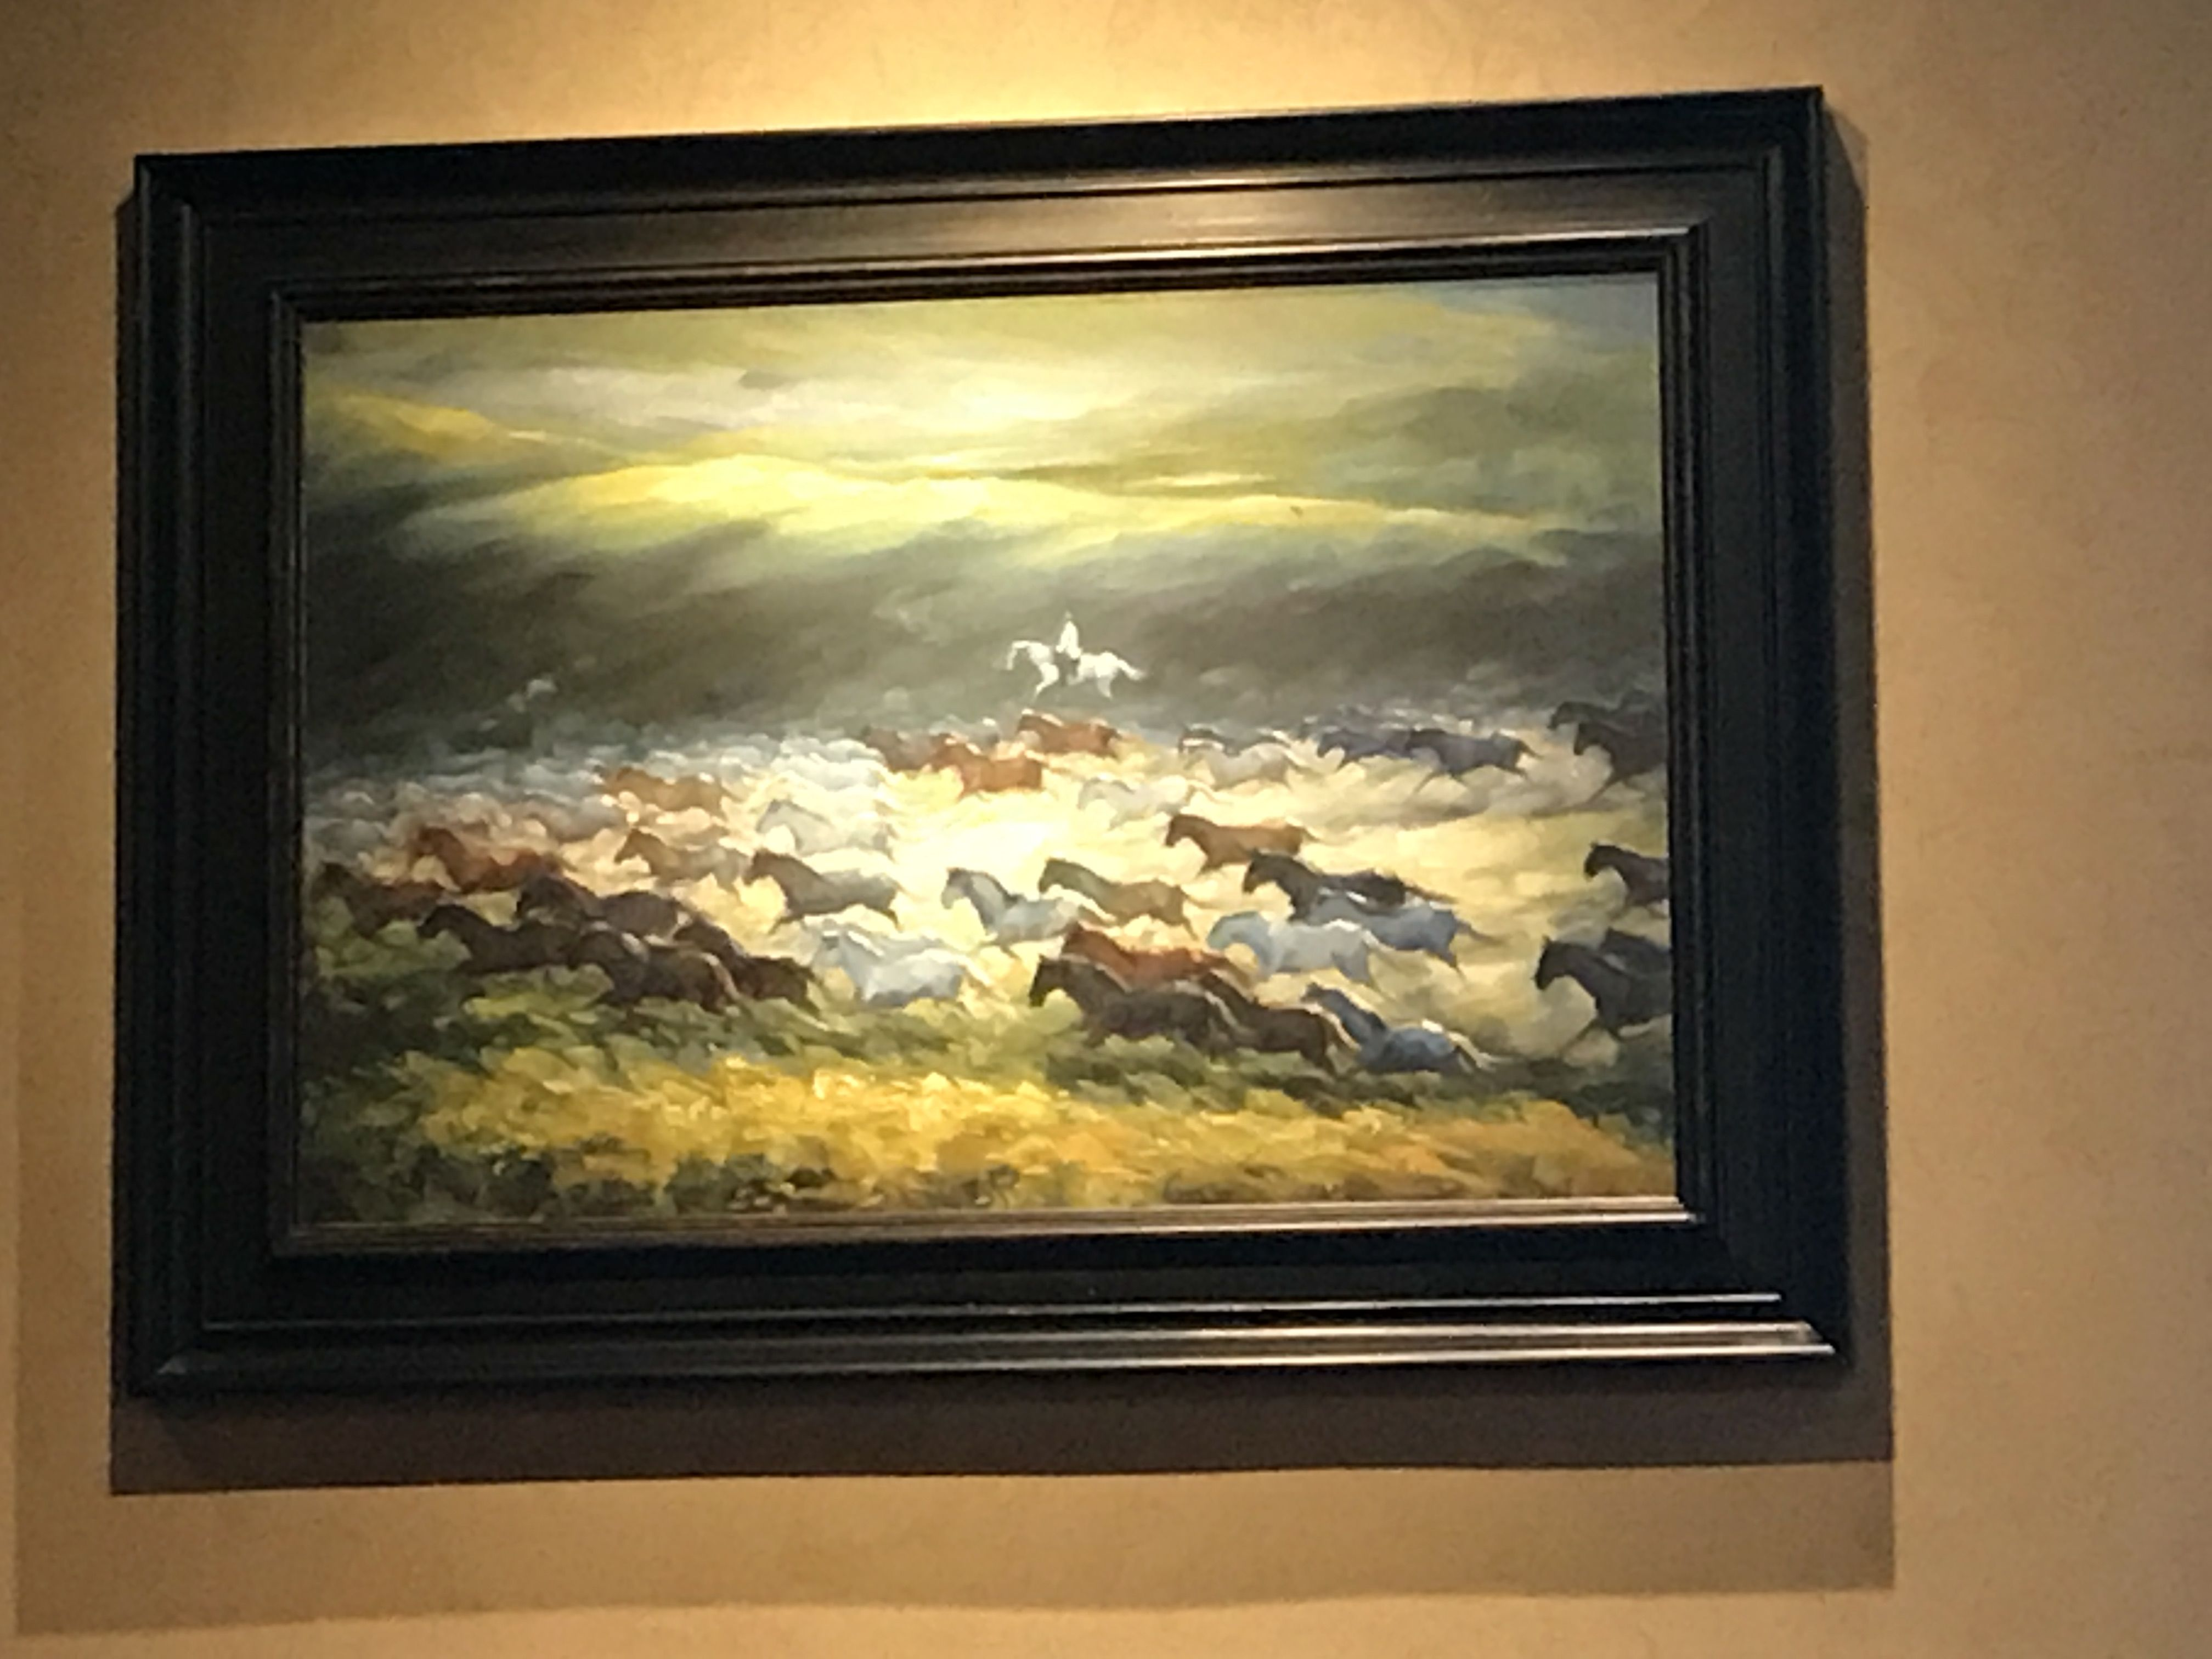 Having dinner at Longhorn Steakhouse and saw this painting. Does ...